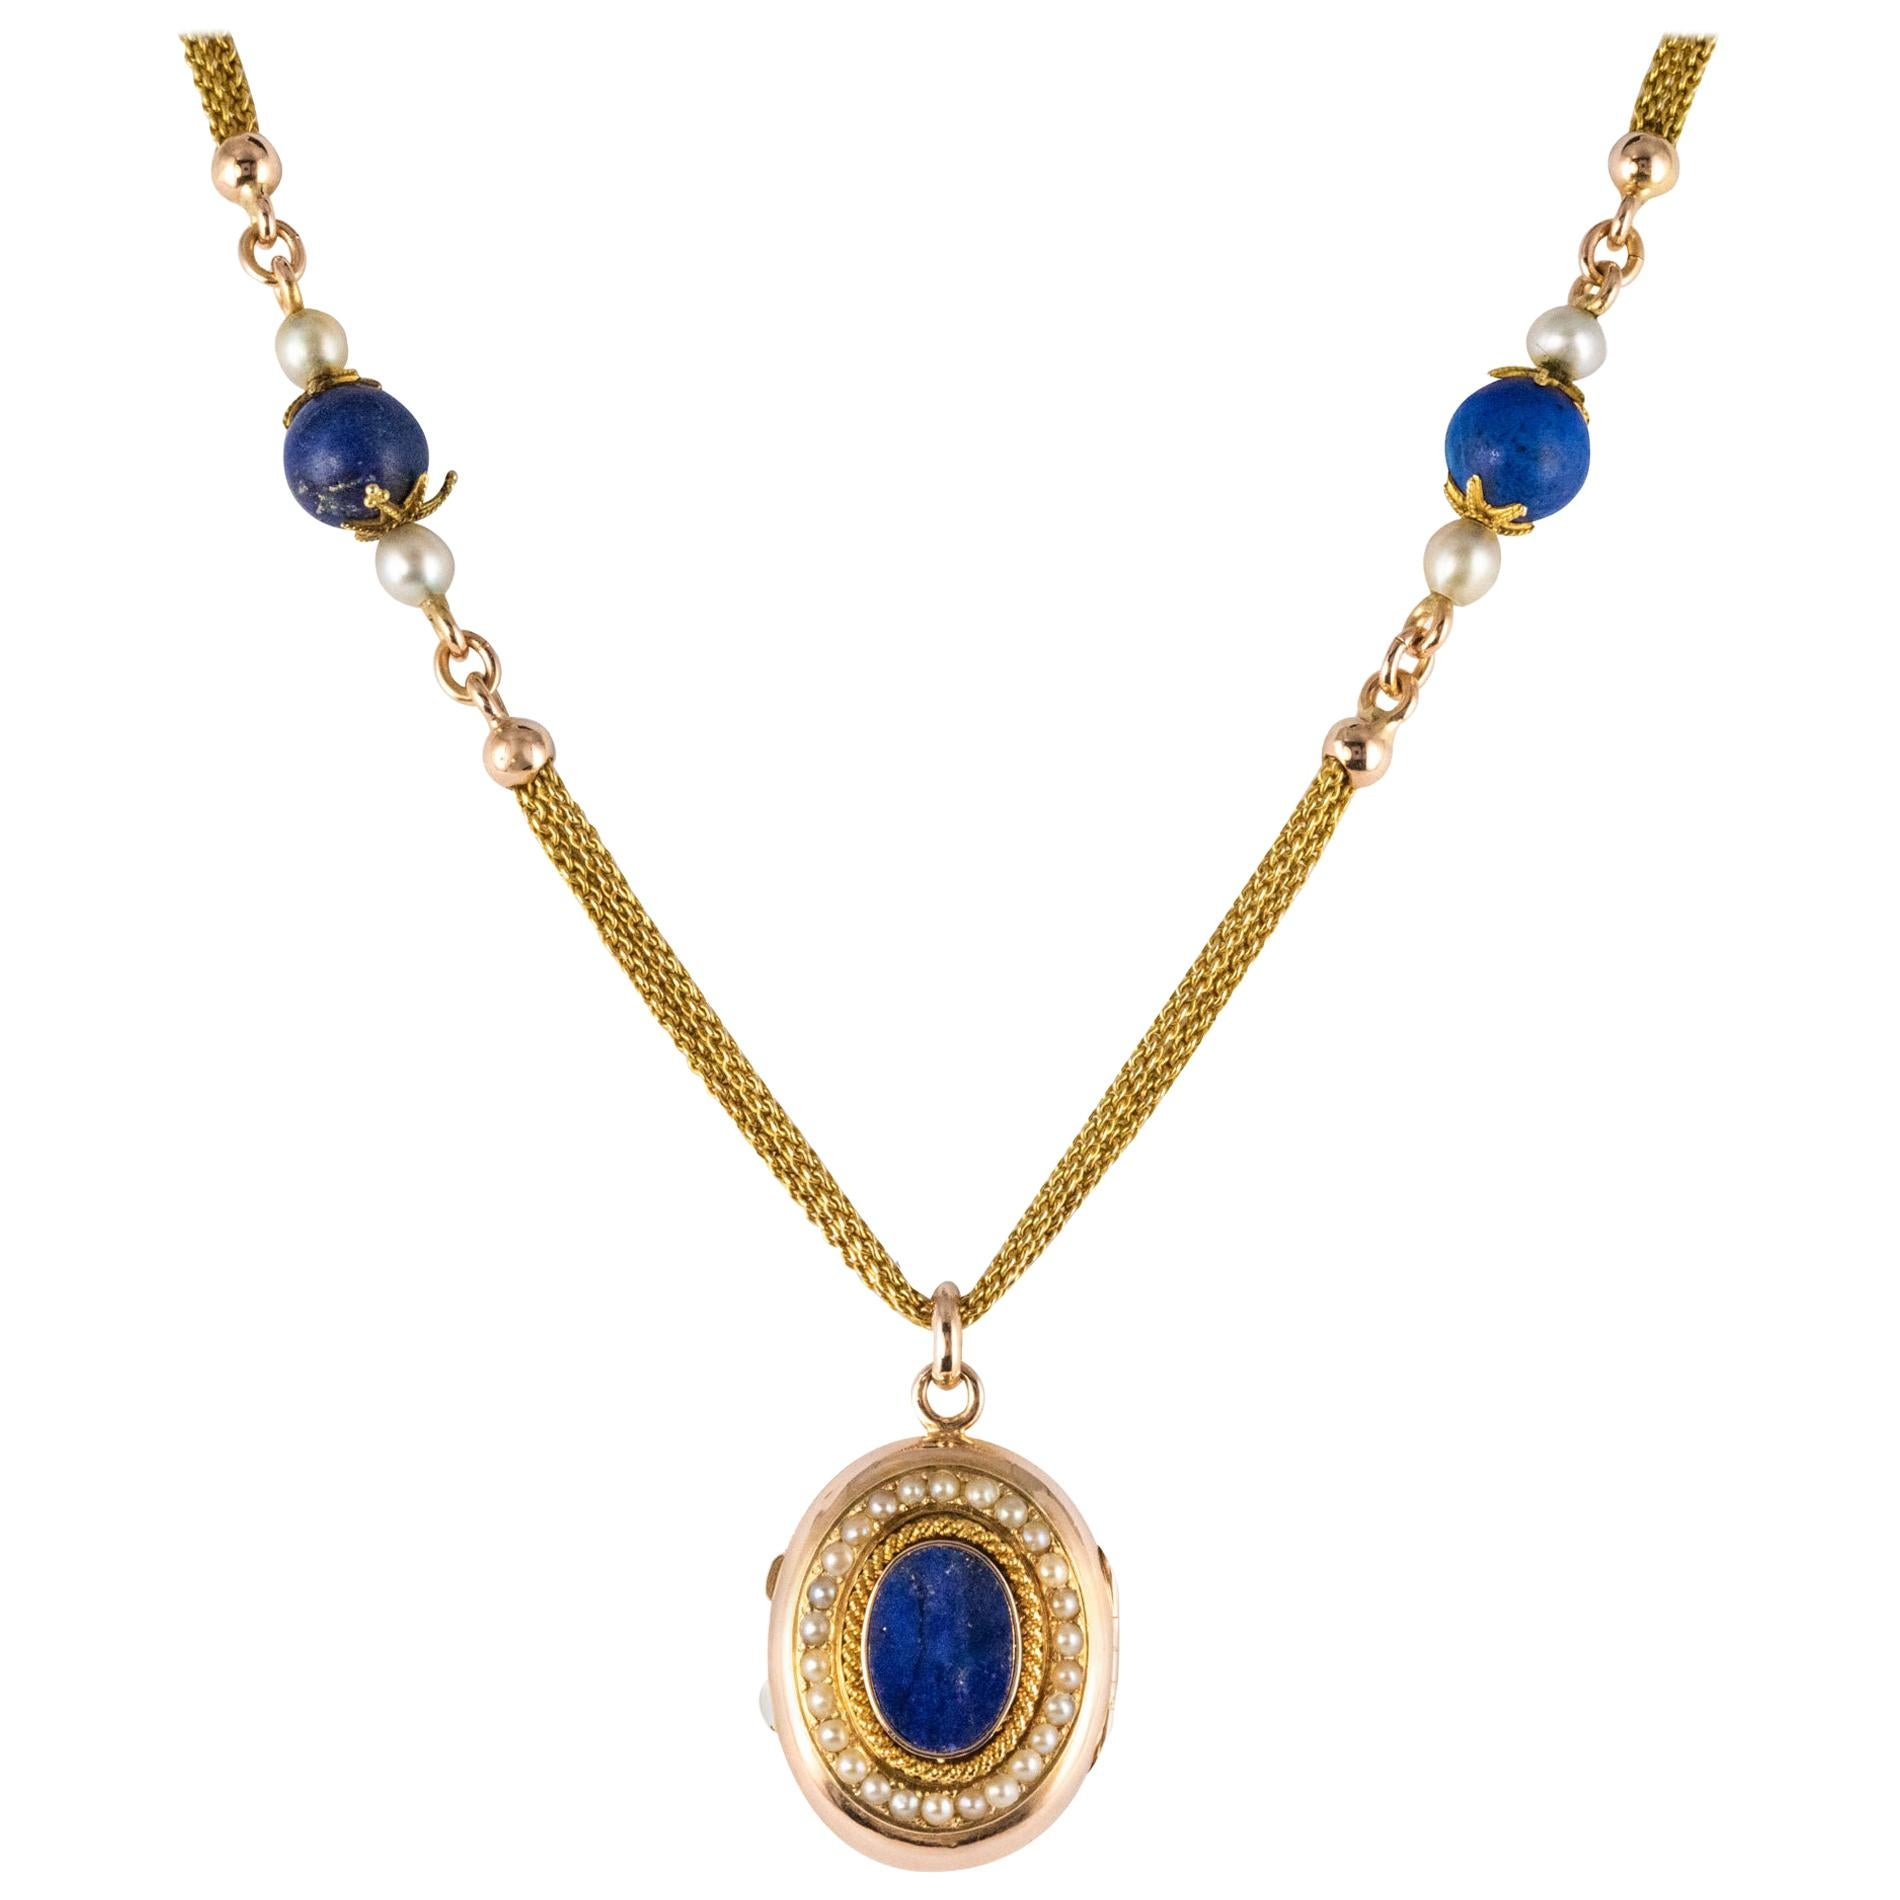 French 19th Century Lapis Lazuli Natural Pearls 18 Karat Gold Medallion Necklace